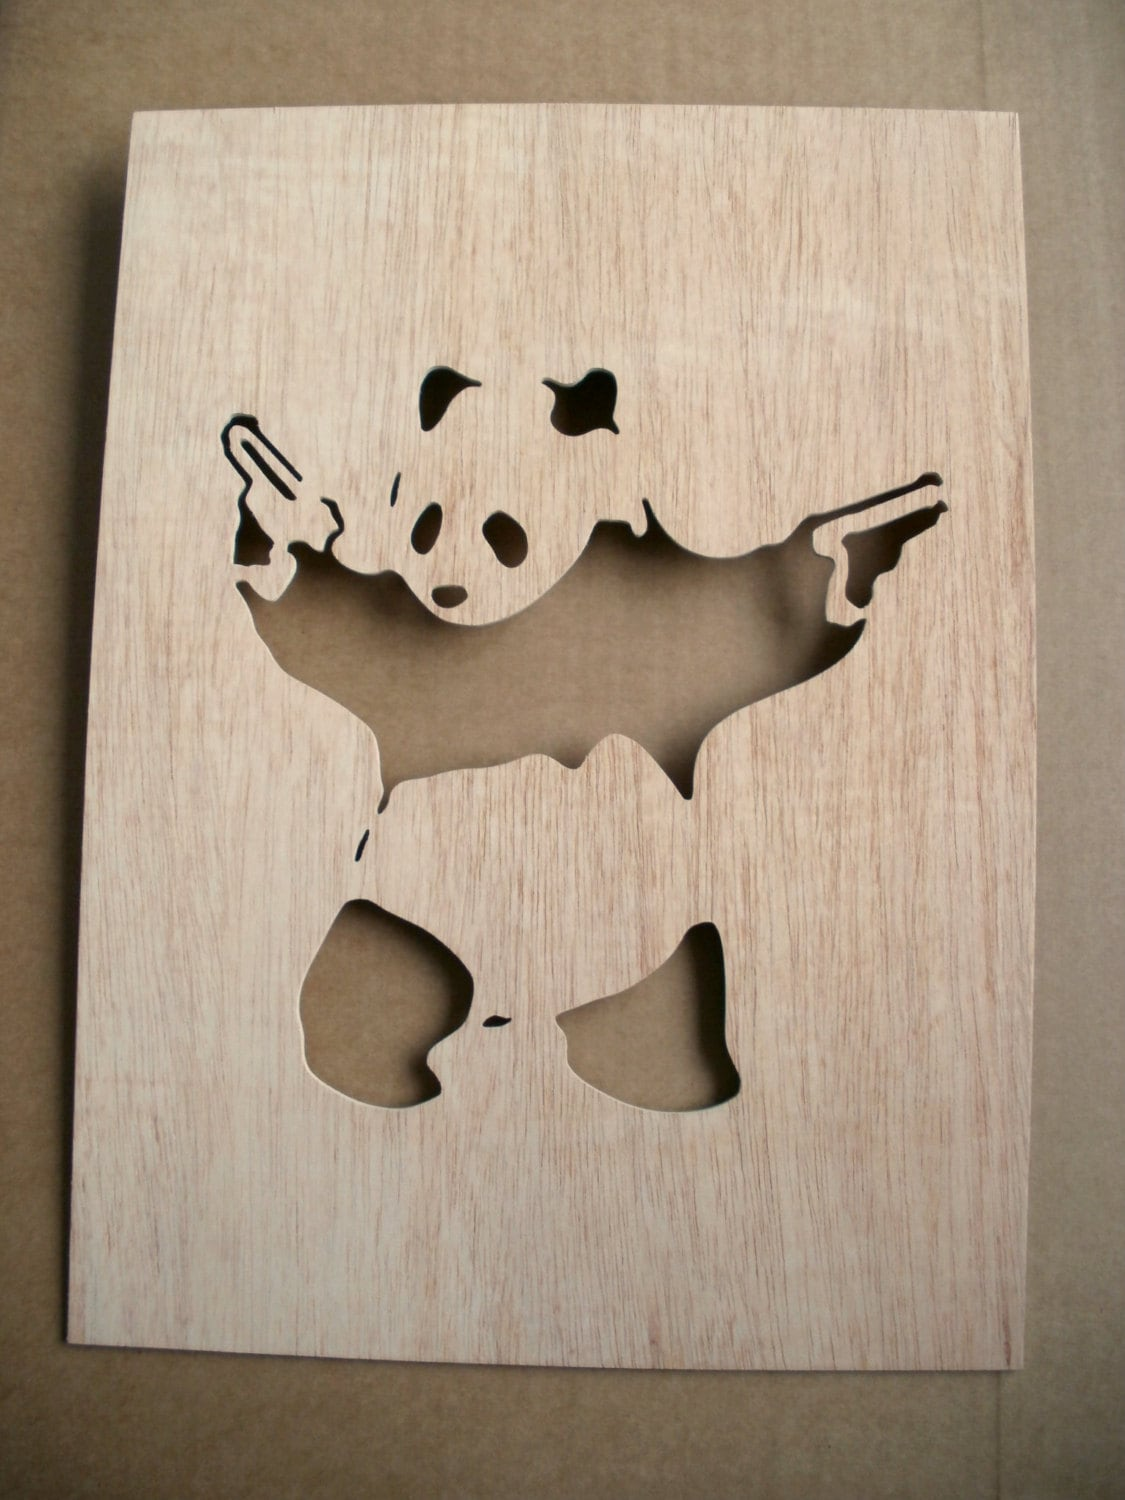 Panda With Guns Wooden Stencil